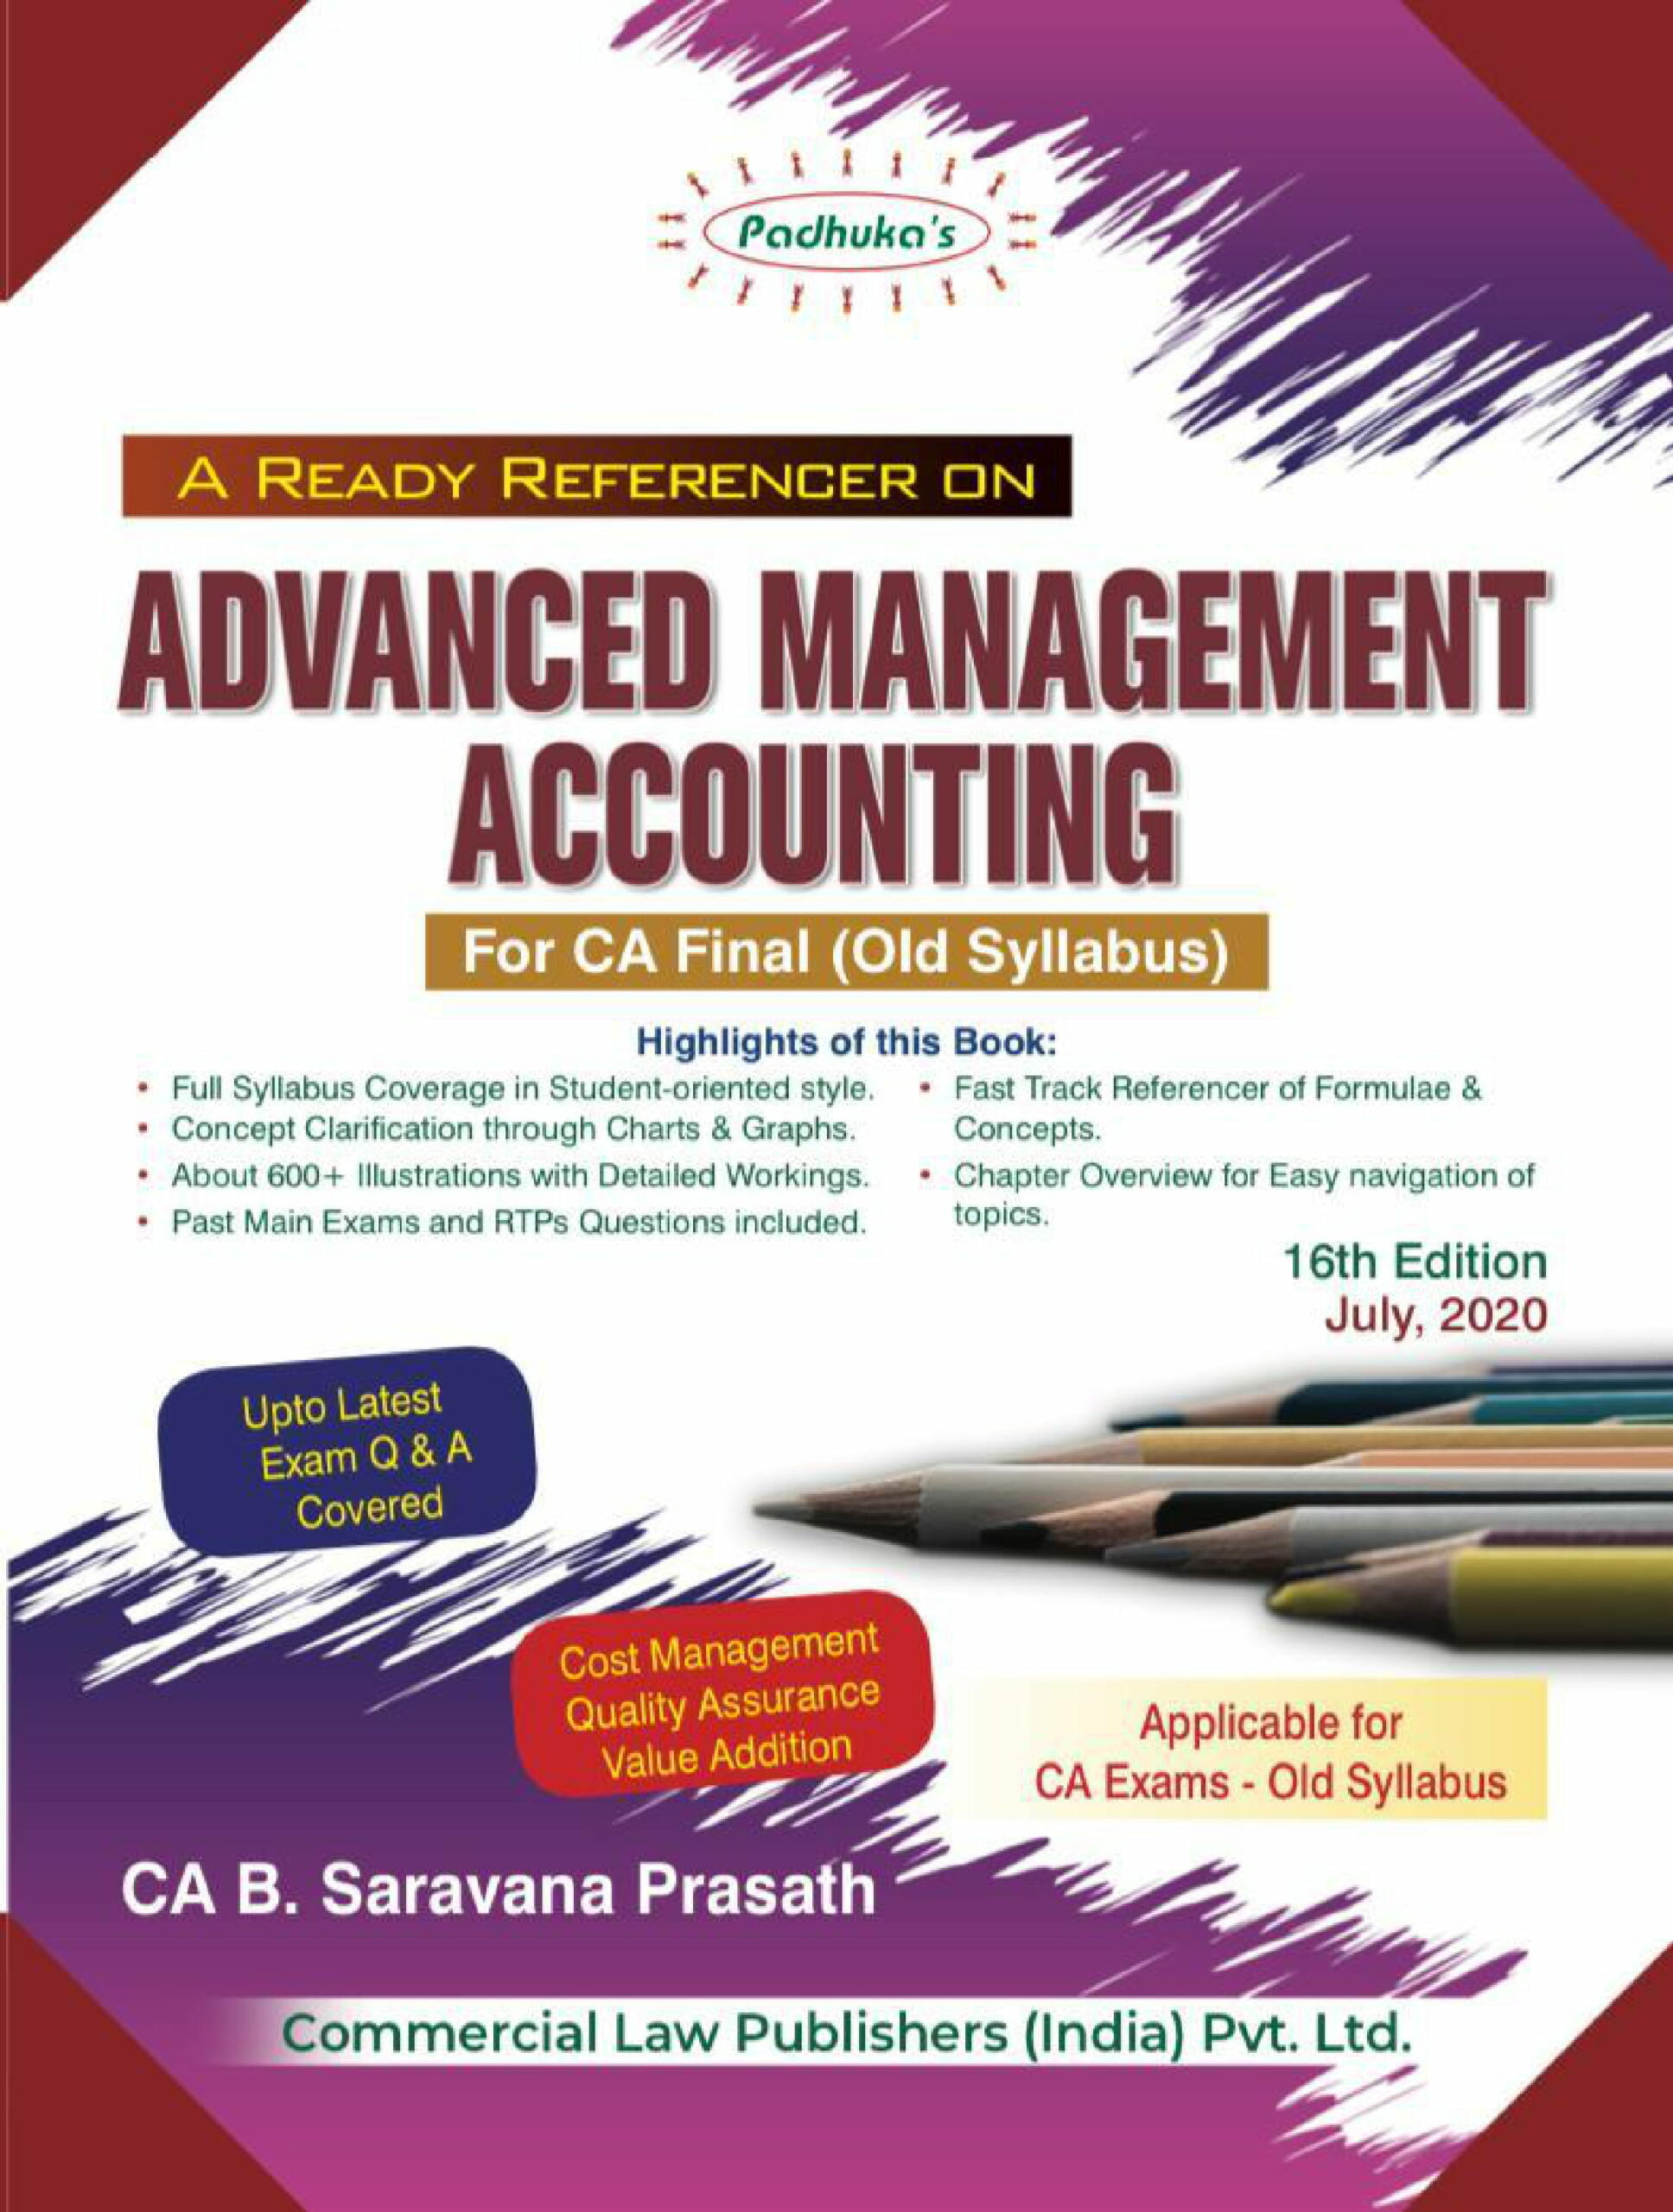 Padhuka A Ready Referencer on Advanced Management Accounting for CA Final by CA B. Saravana Prasath (Wolters Kluwer Publishing) for Nov 2020